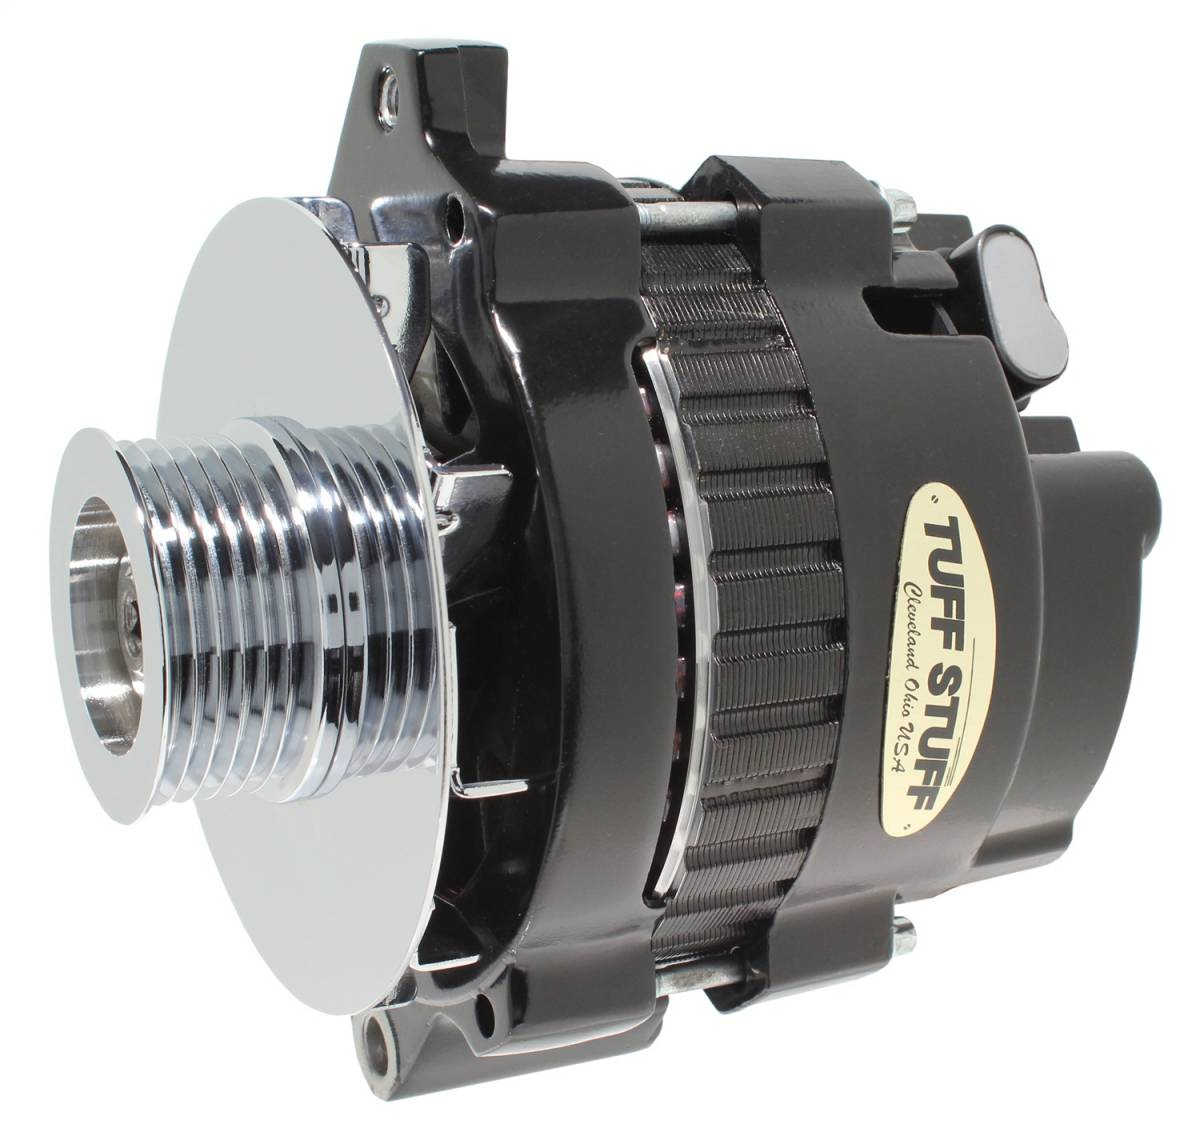 Tuff Stuff Performance - Alternator 160 AMP 1 Wire Or OEM 6 Groove Pulley 6.125 in. Bolt To Bolt Black 7866G6G